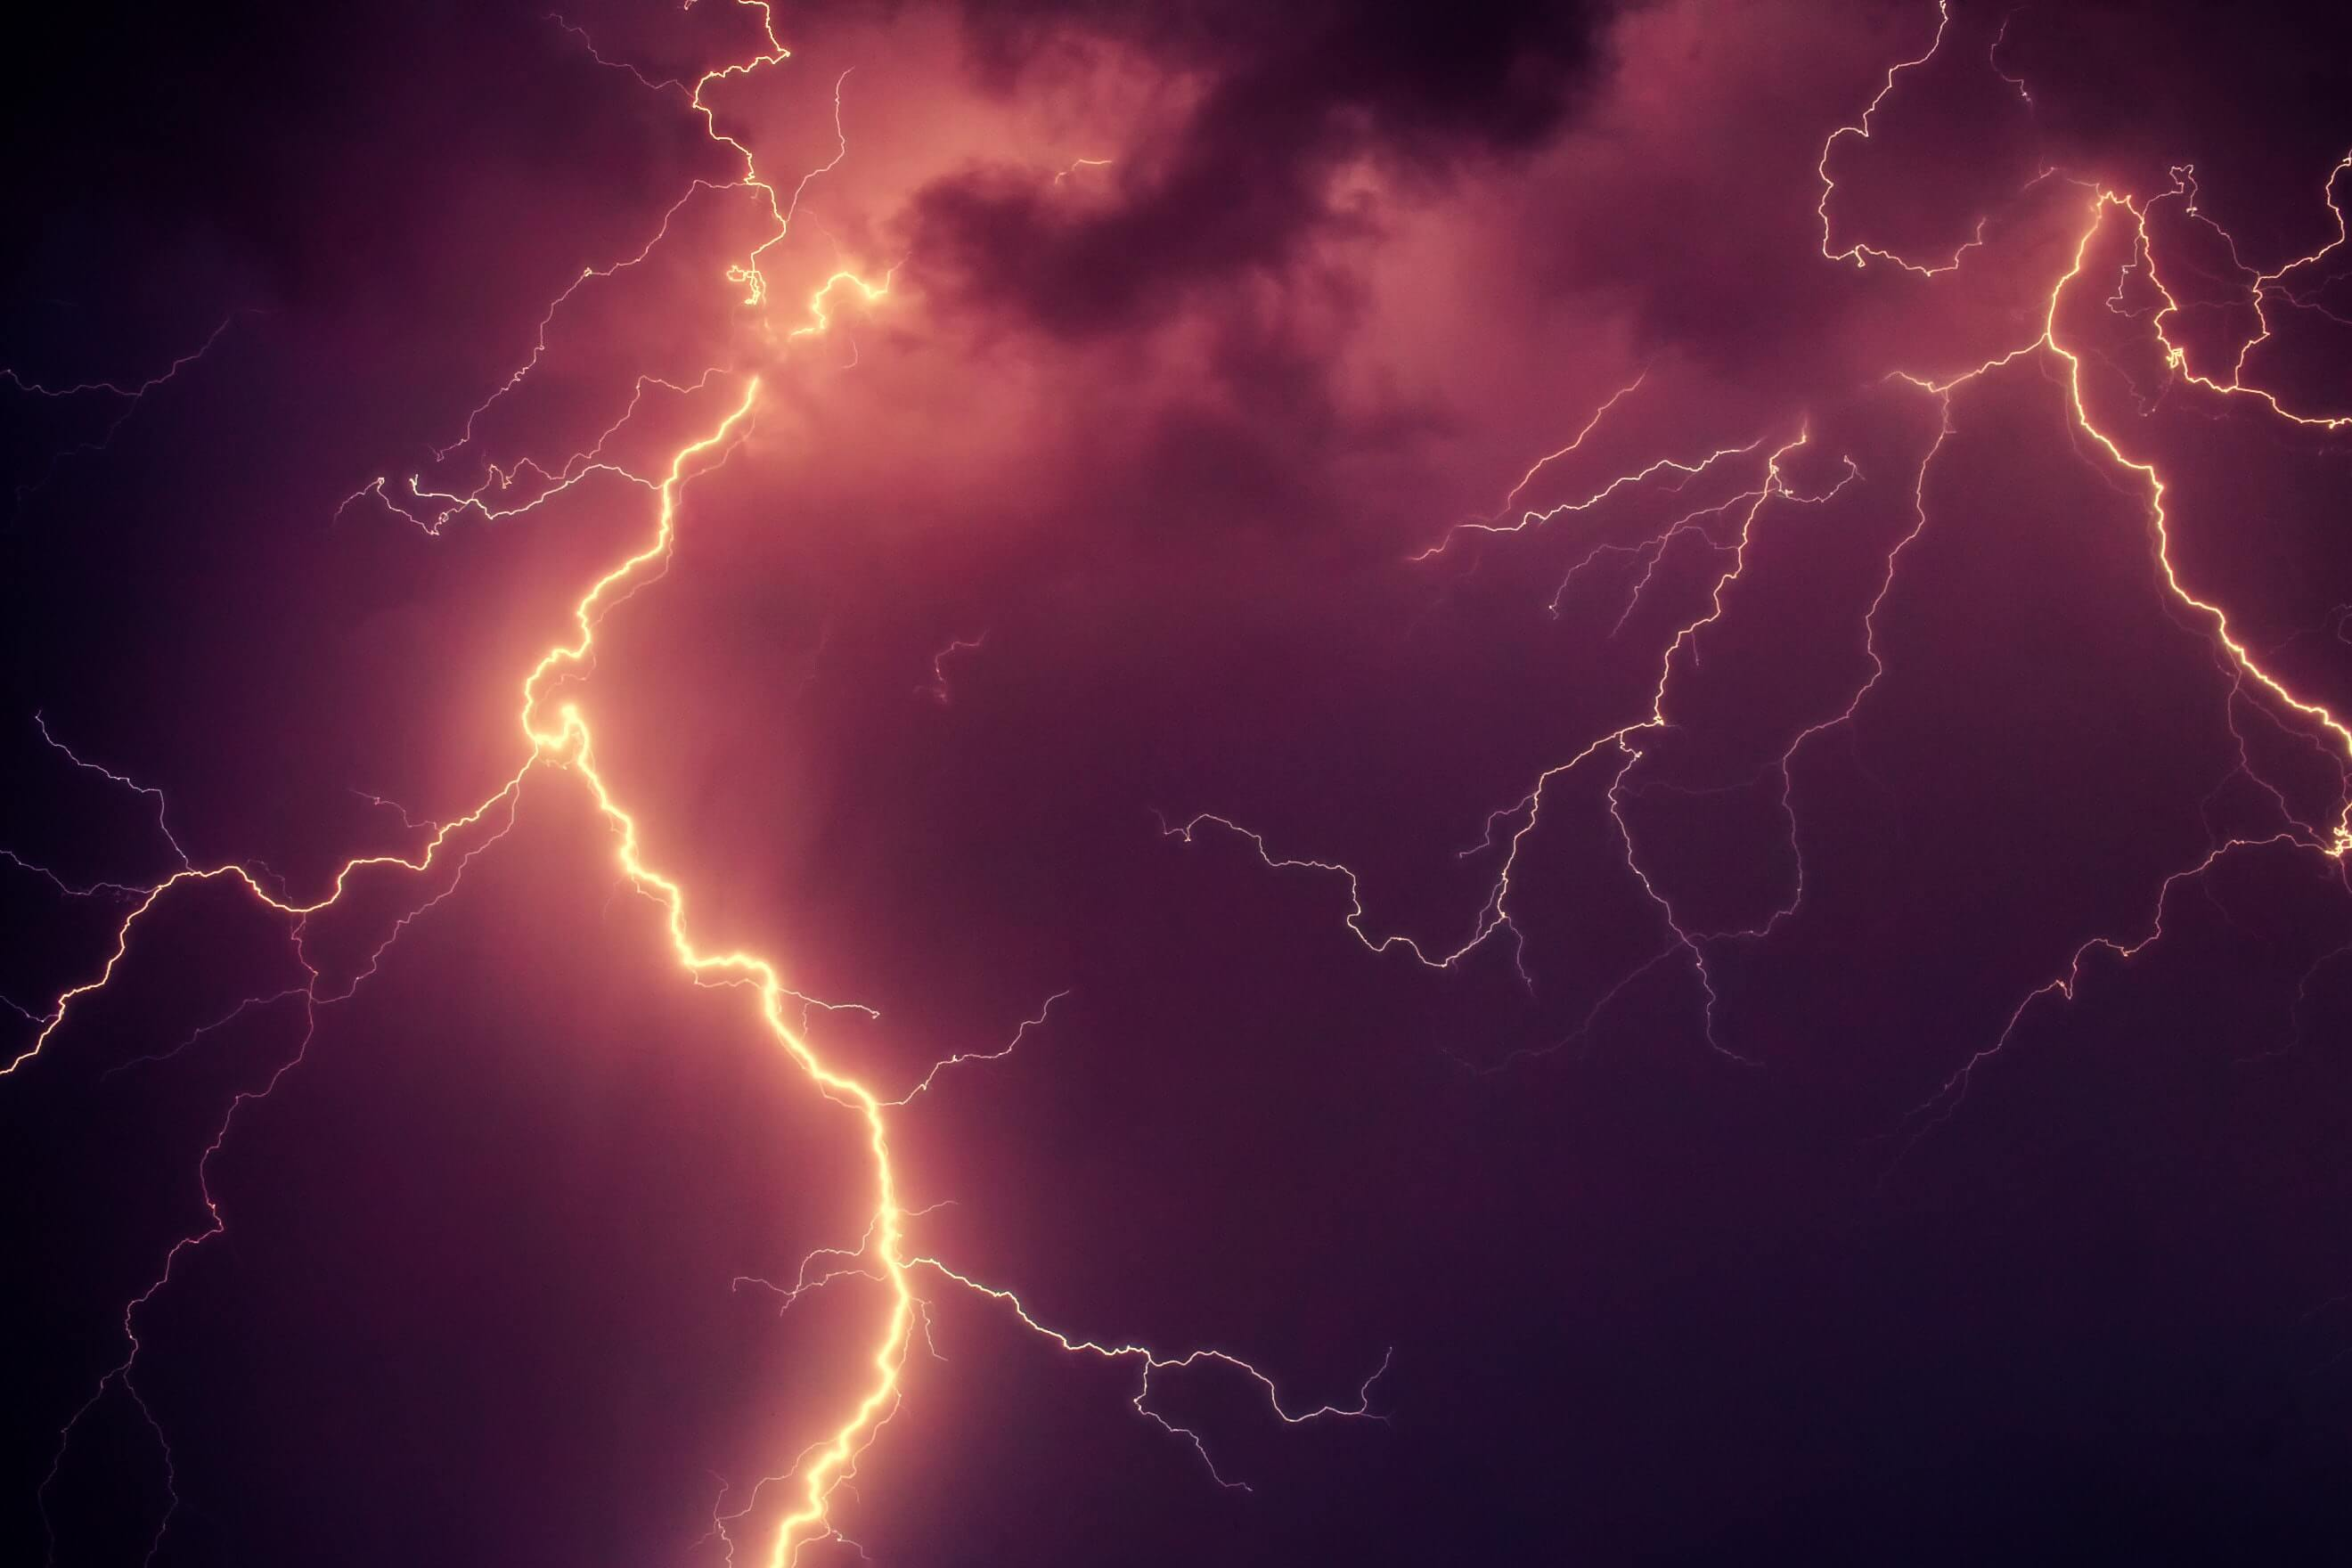 What is a Red Lightning, and is it real?